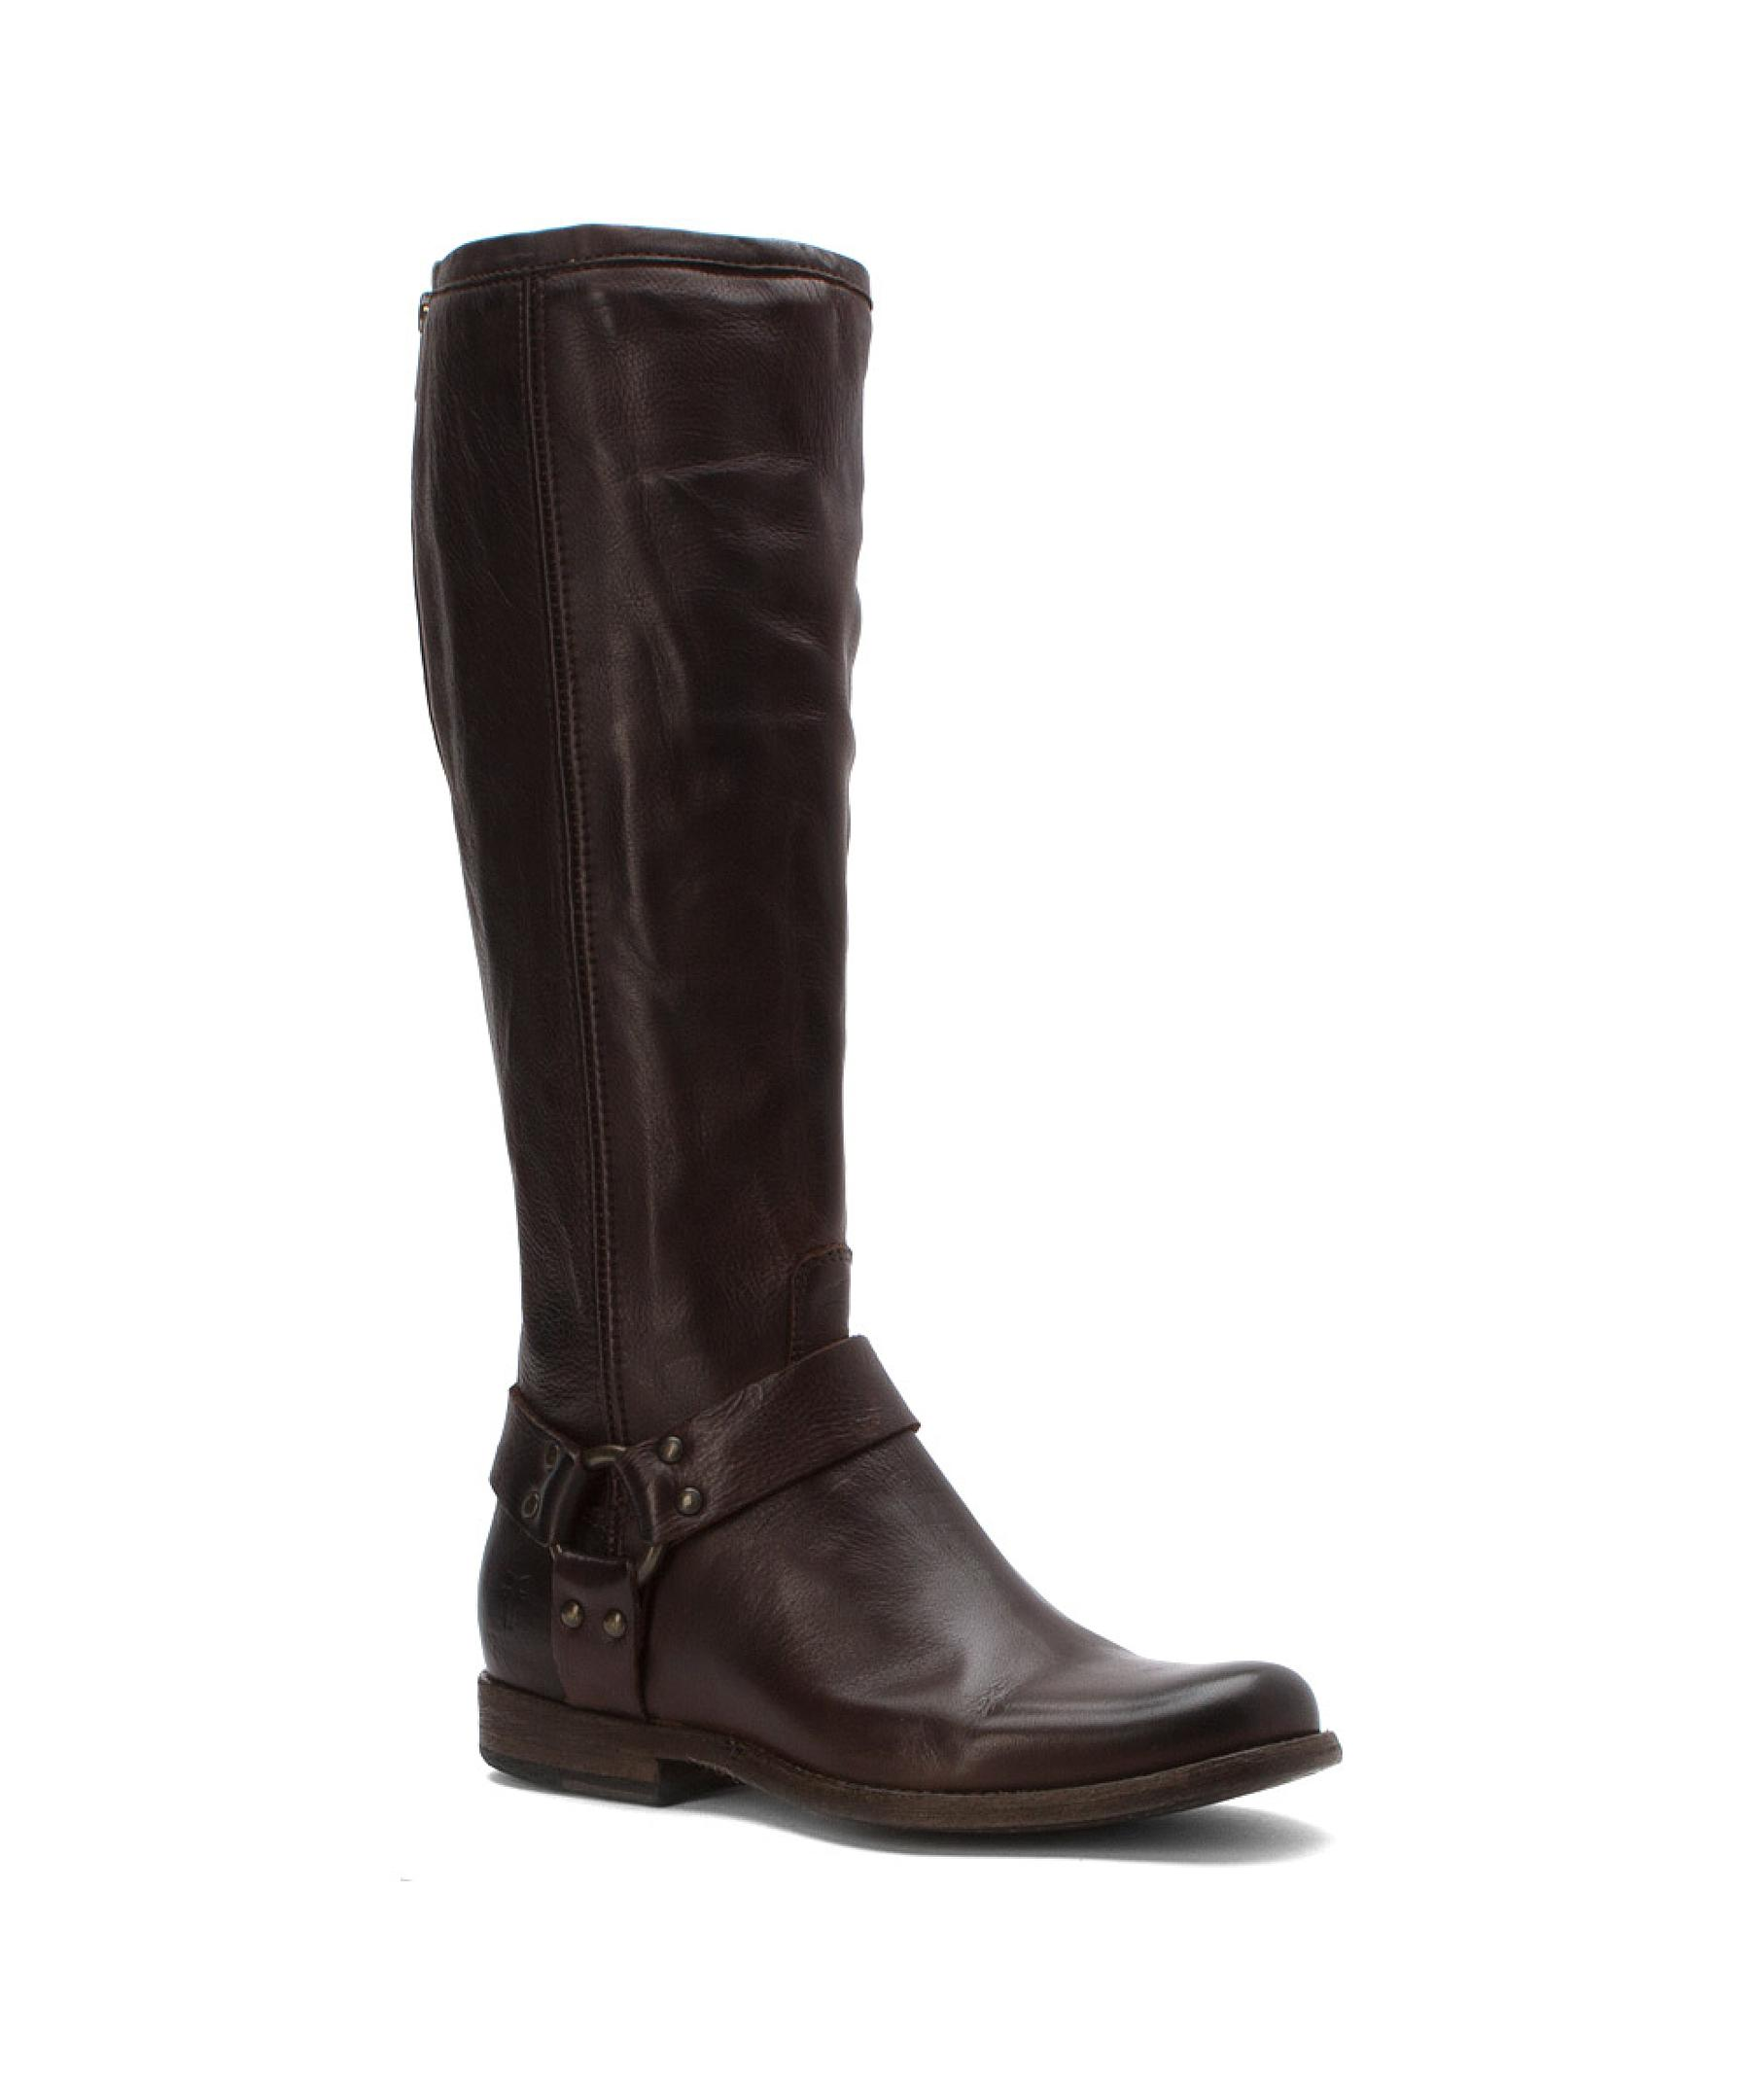 Old Navy has a collection of wide calf boots that provides a stylish look and a comfortable fit. Choose from wide calf boots in a wide selection of fabulous styles and colors.